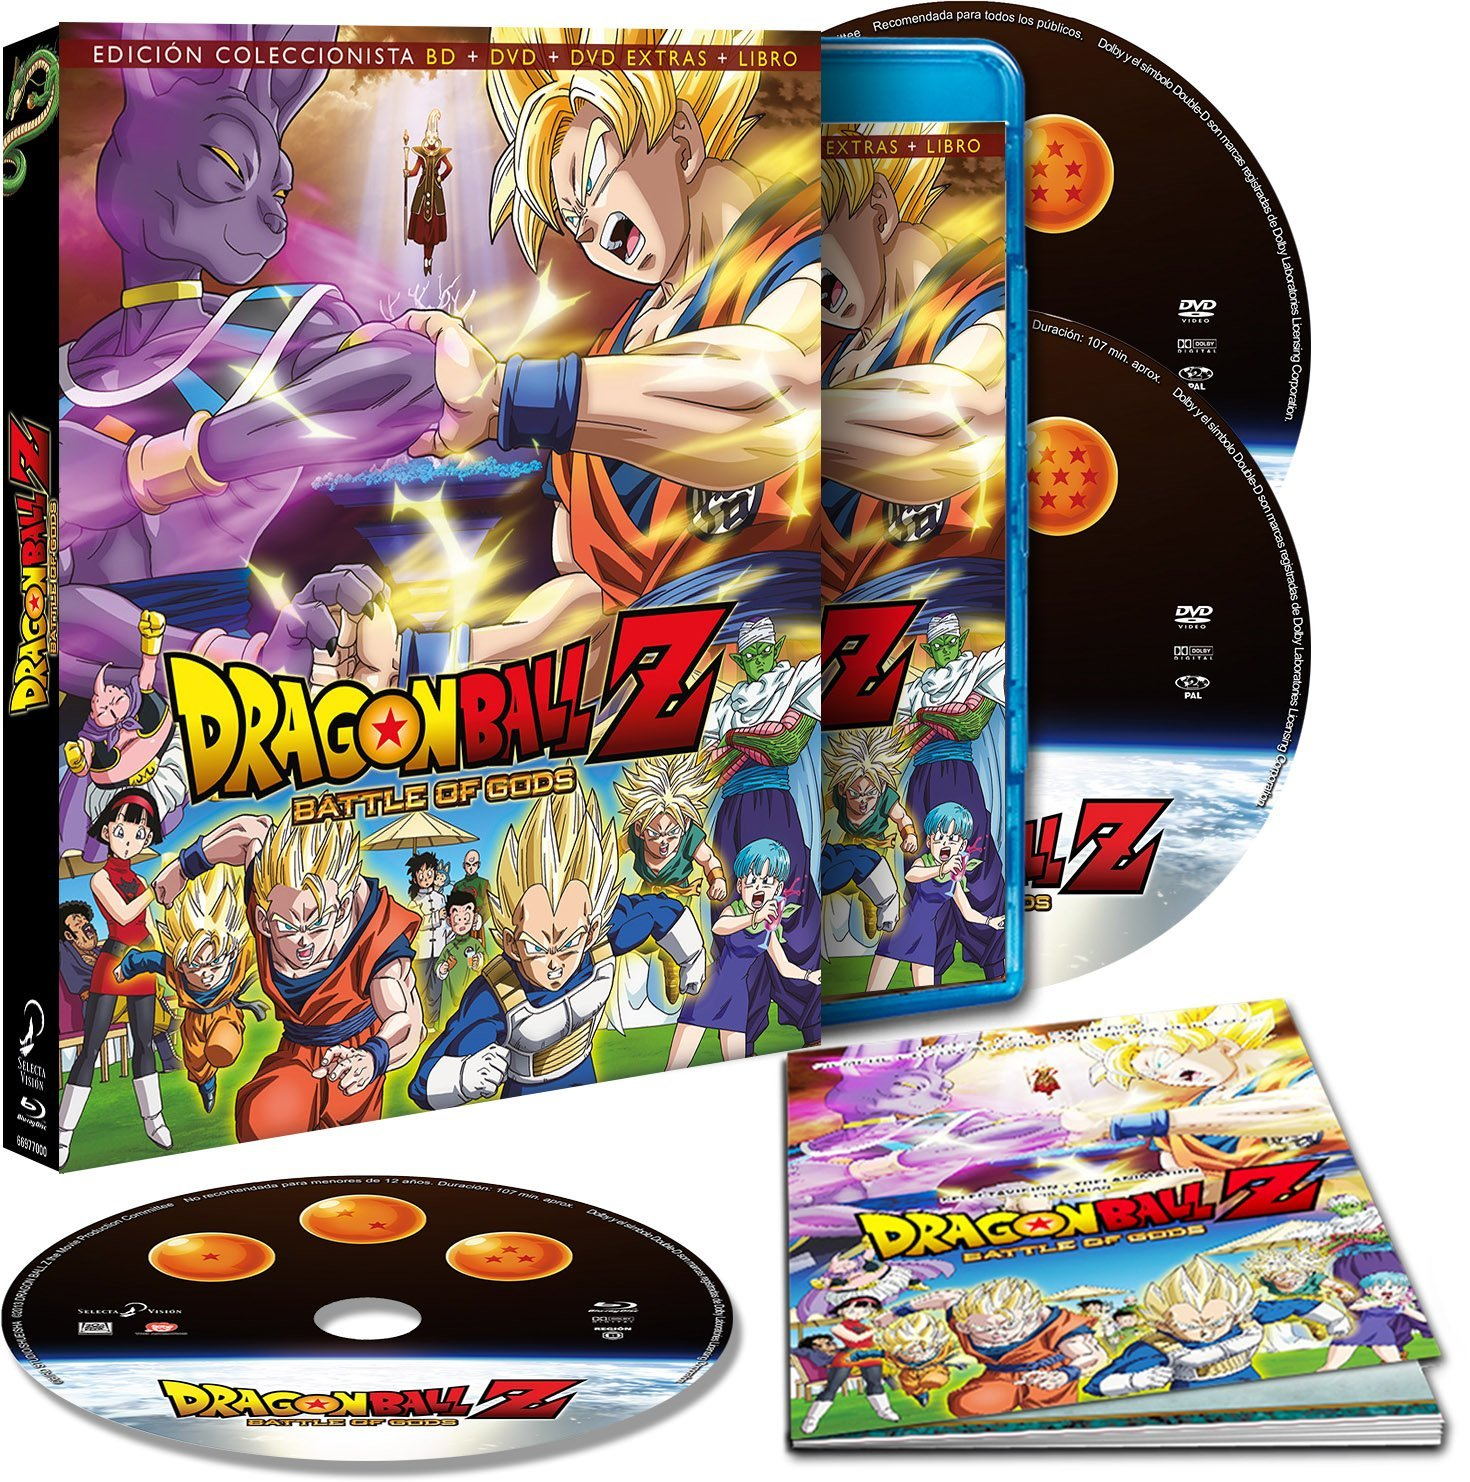 Dragon Ball Z: Battle of Gods (Edición Coleccionista)